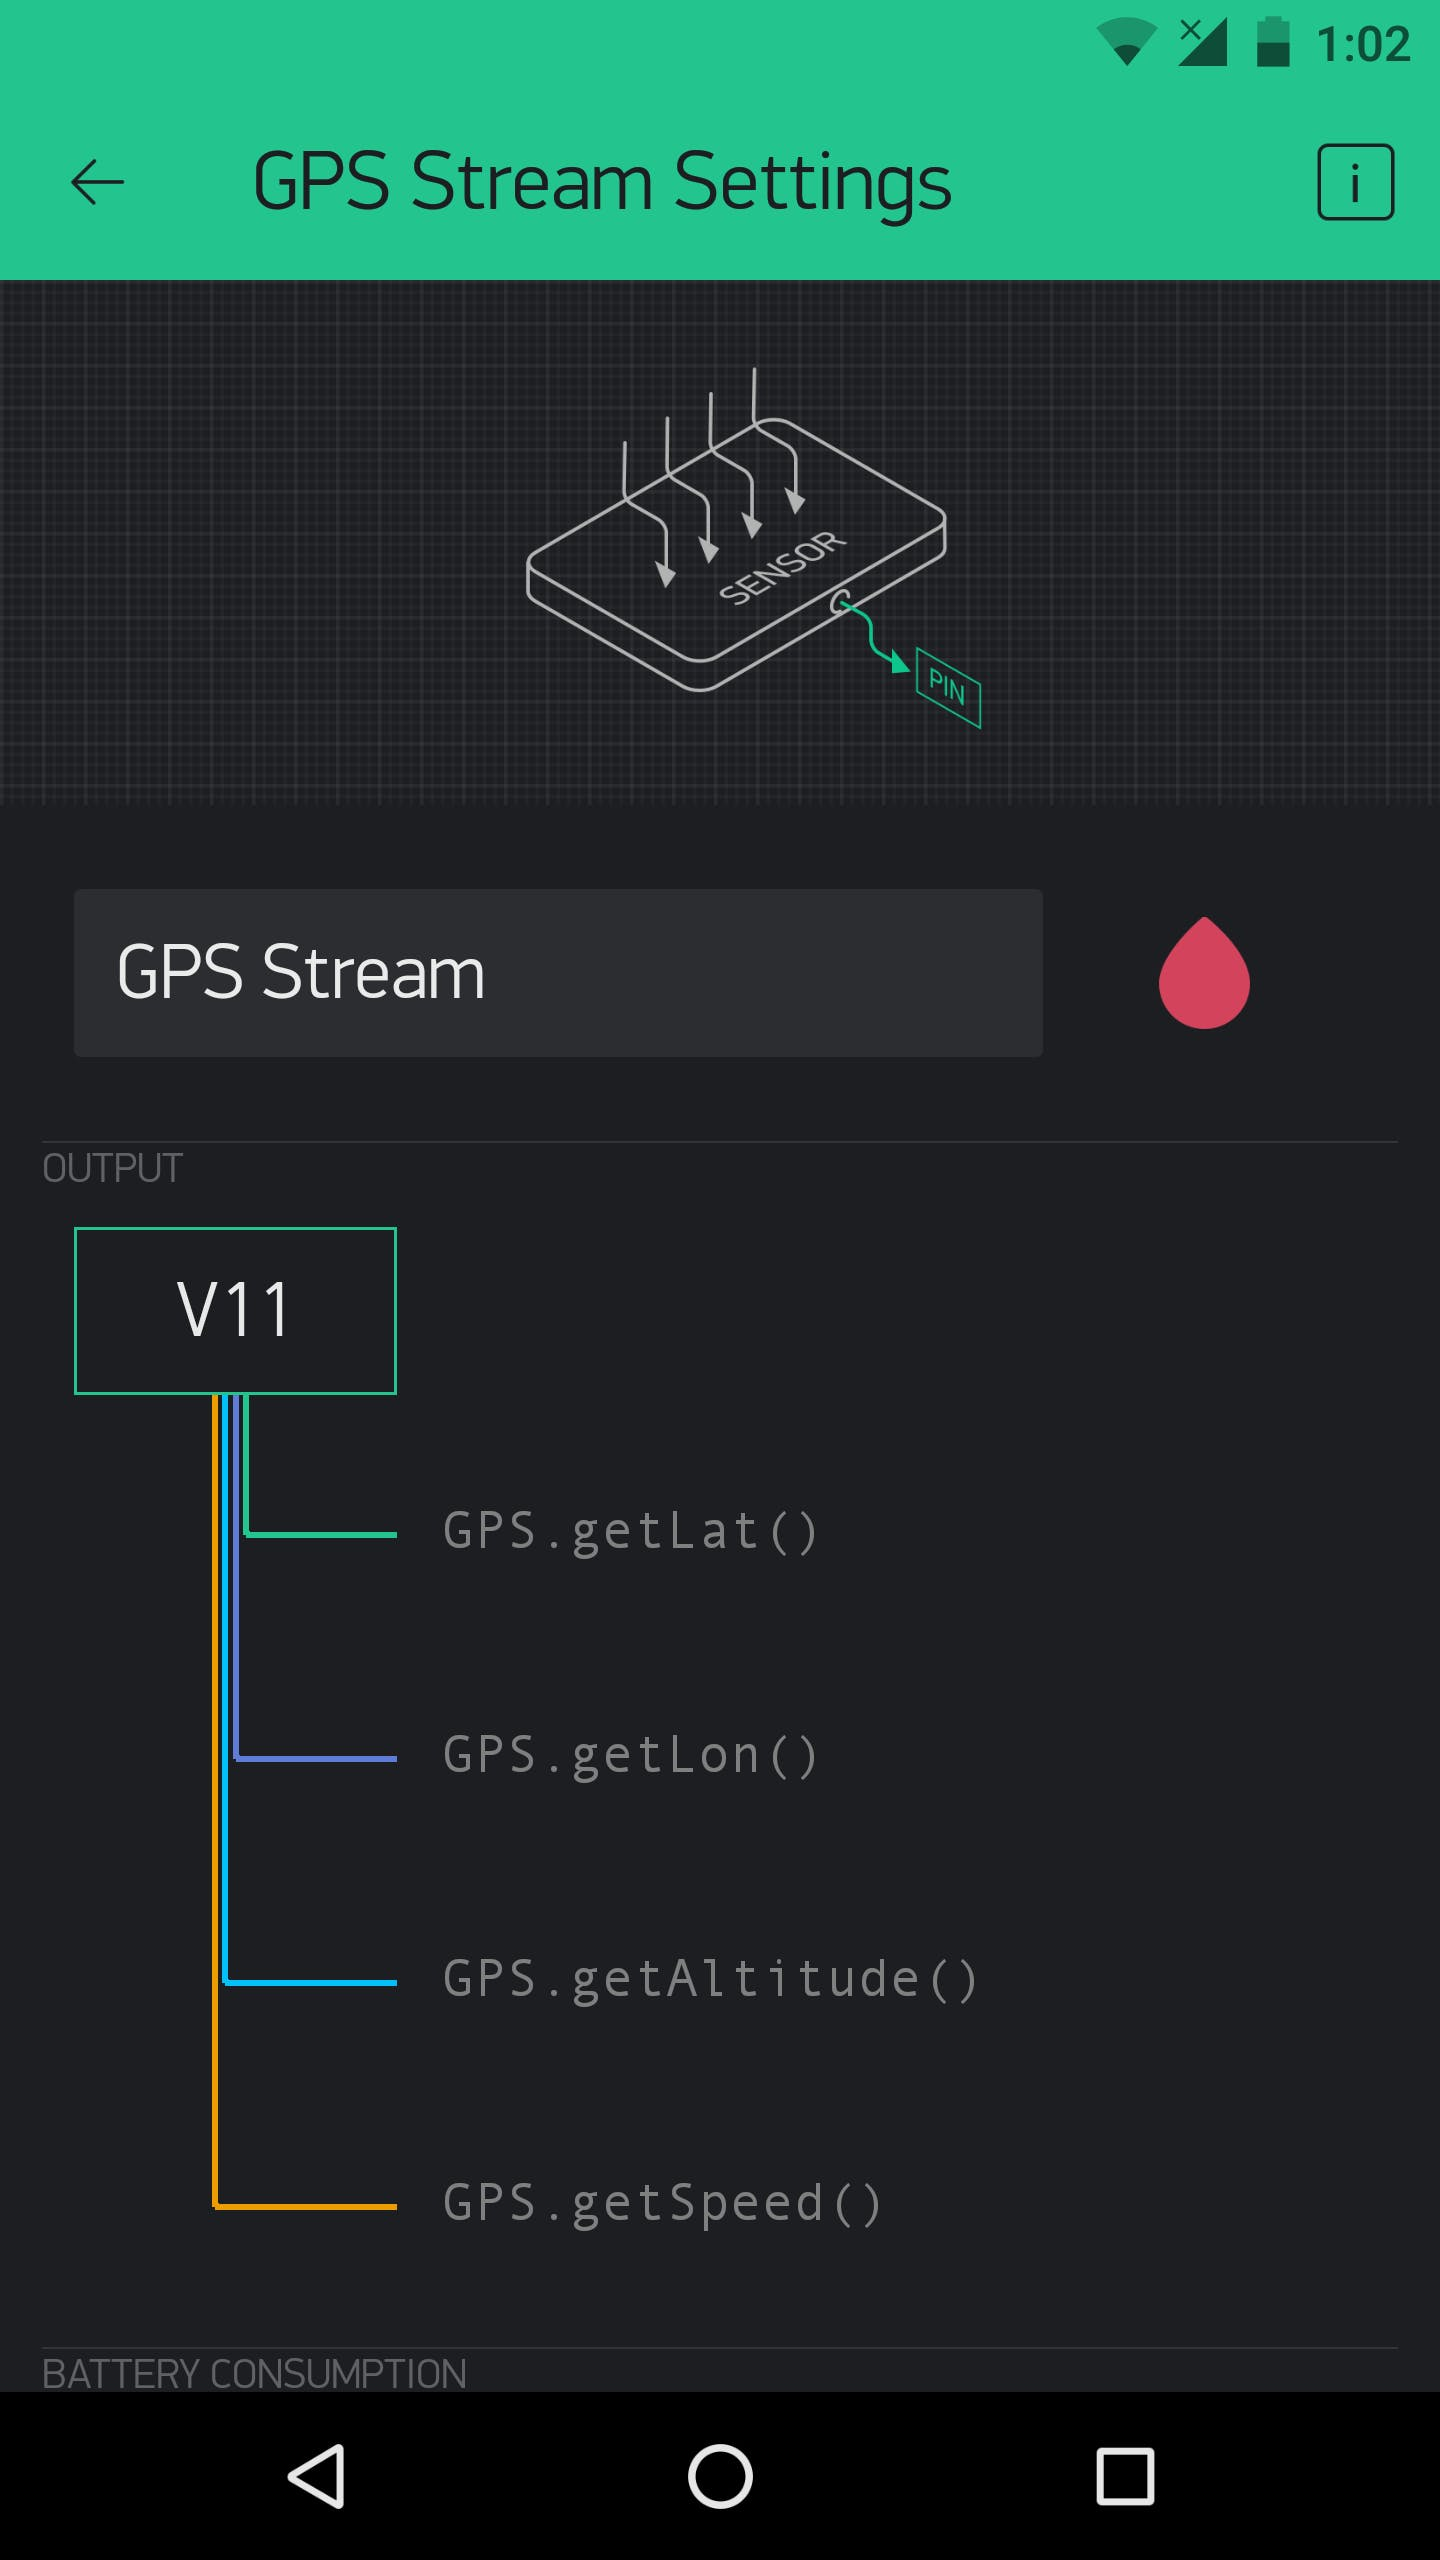 The GPS Stream sends your smartphone's geographical location to a specified virtual pin